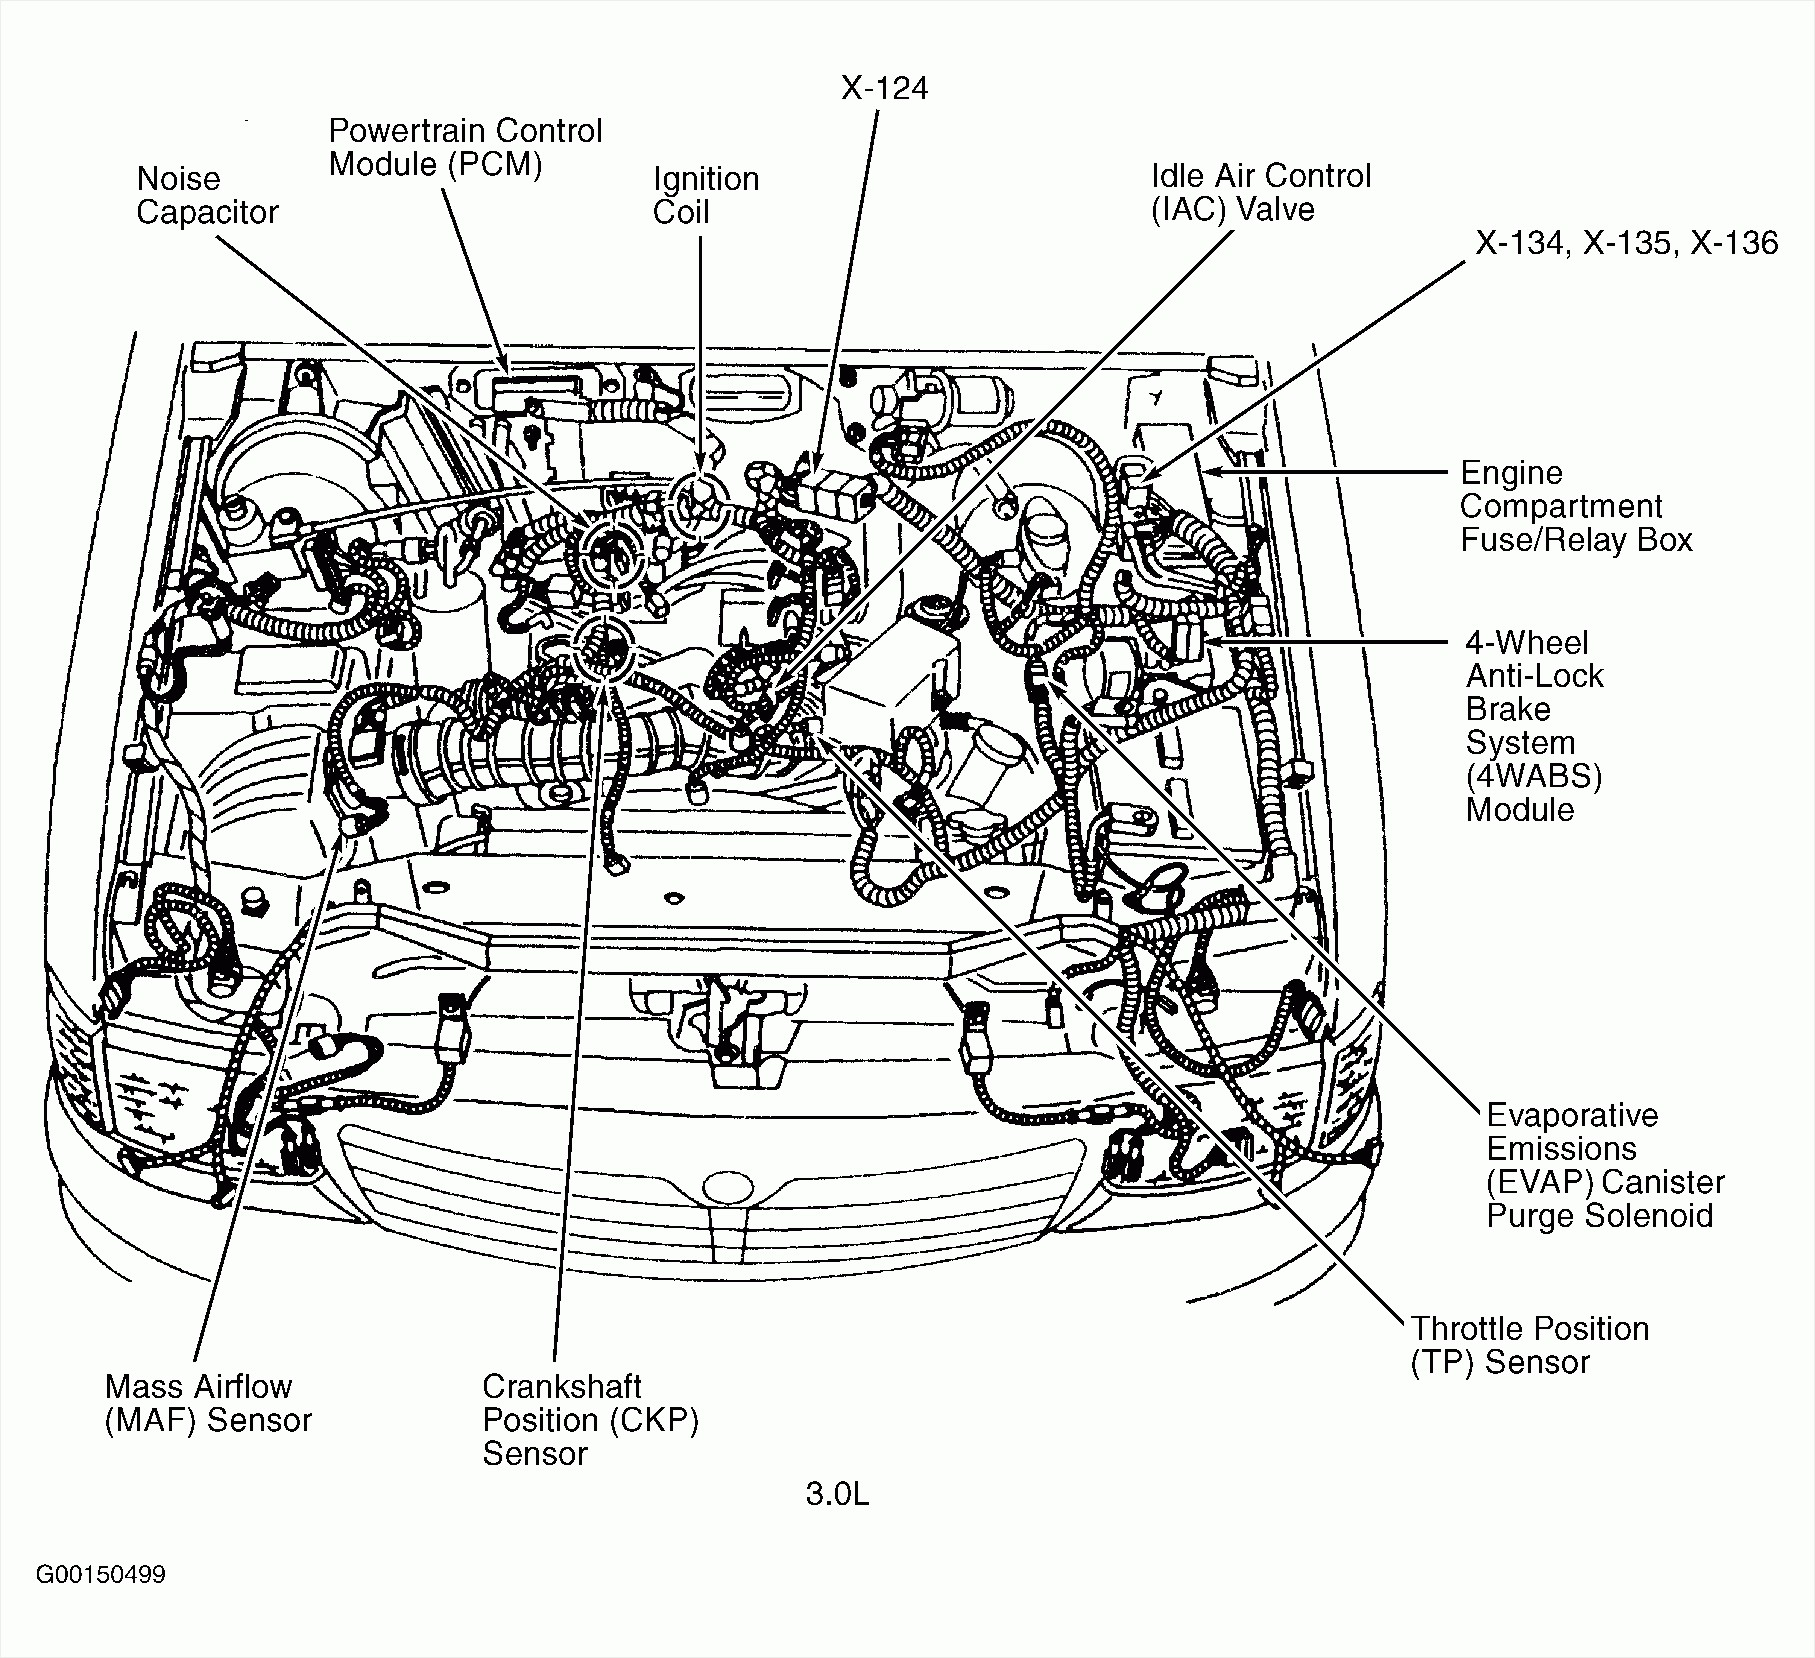 Jetta Tdi Engine Diagram Schematics Wiring Diagrams Vw Wires Cap Complete U2022 Rh Oldorchardfarm Co 2006